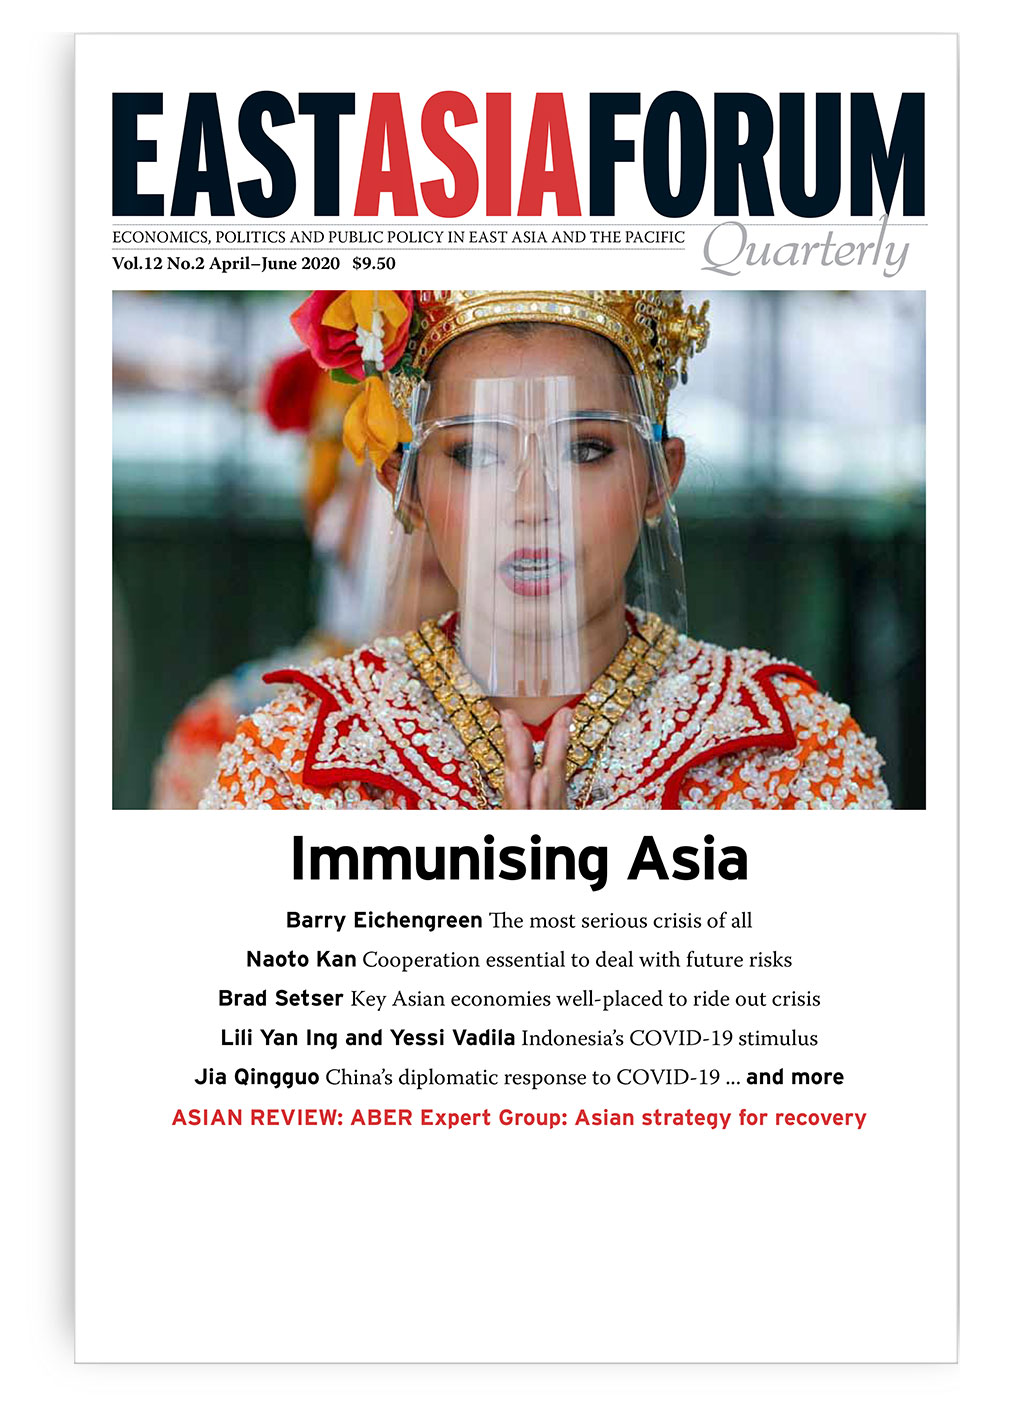 East Asia Forum Quarterly: Volume 12, Number 2, 2020